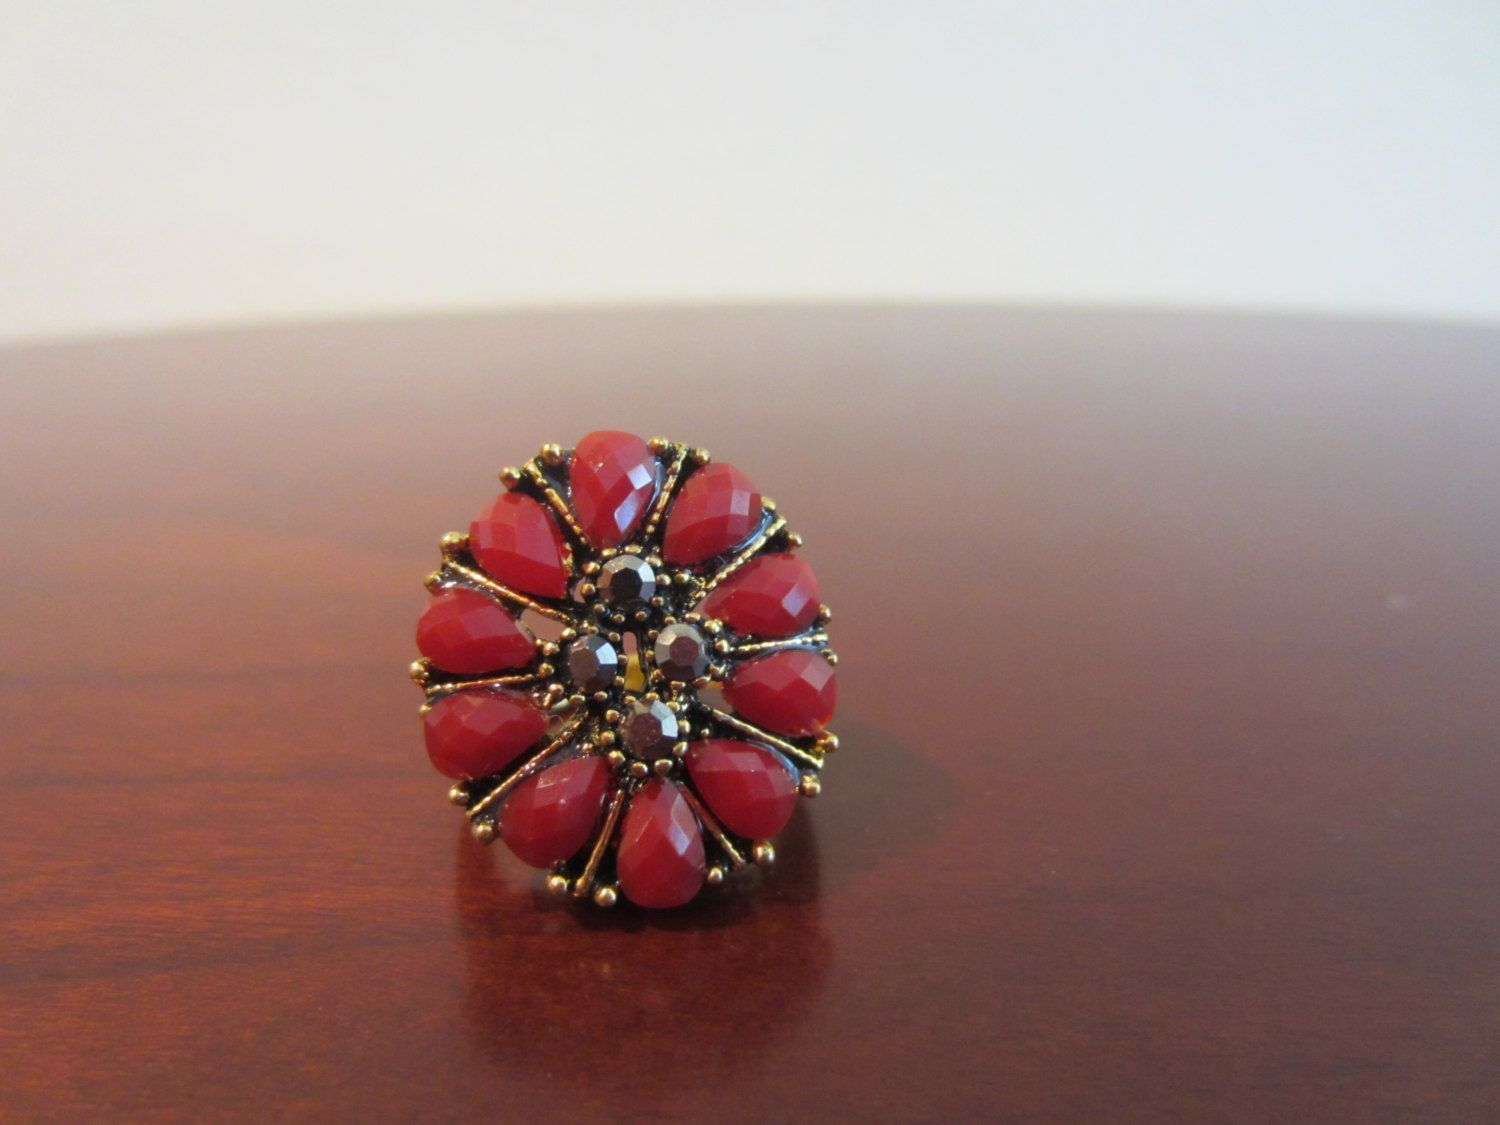 Lovely Burgundy Flower Shaped With Four Sparkling Faux Stones Vintage Gold Tone Metal Ring Size 6.5 Costume Ring by MonkeyCatBoutique on Etsy https://www.etsy.com/listing/200304498/lovely-burgundy-flower-shaped-with-four